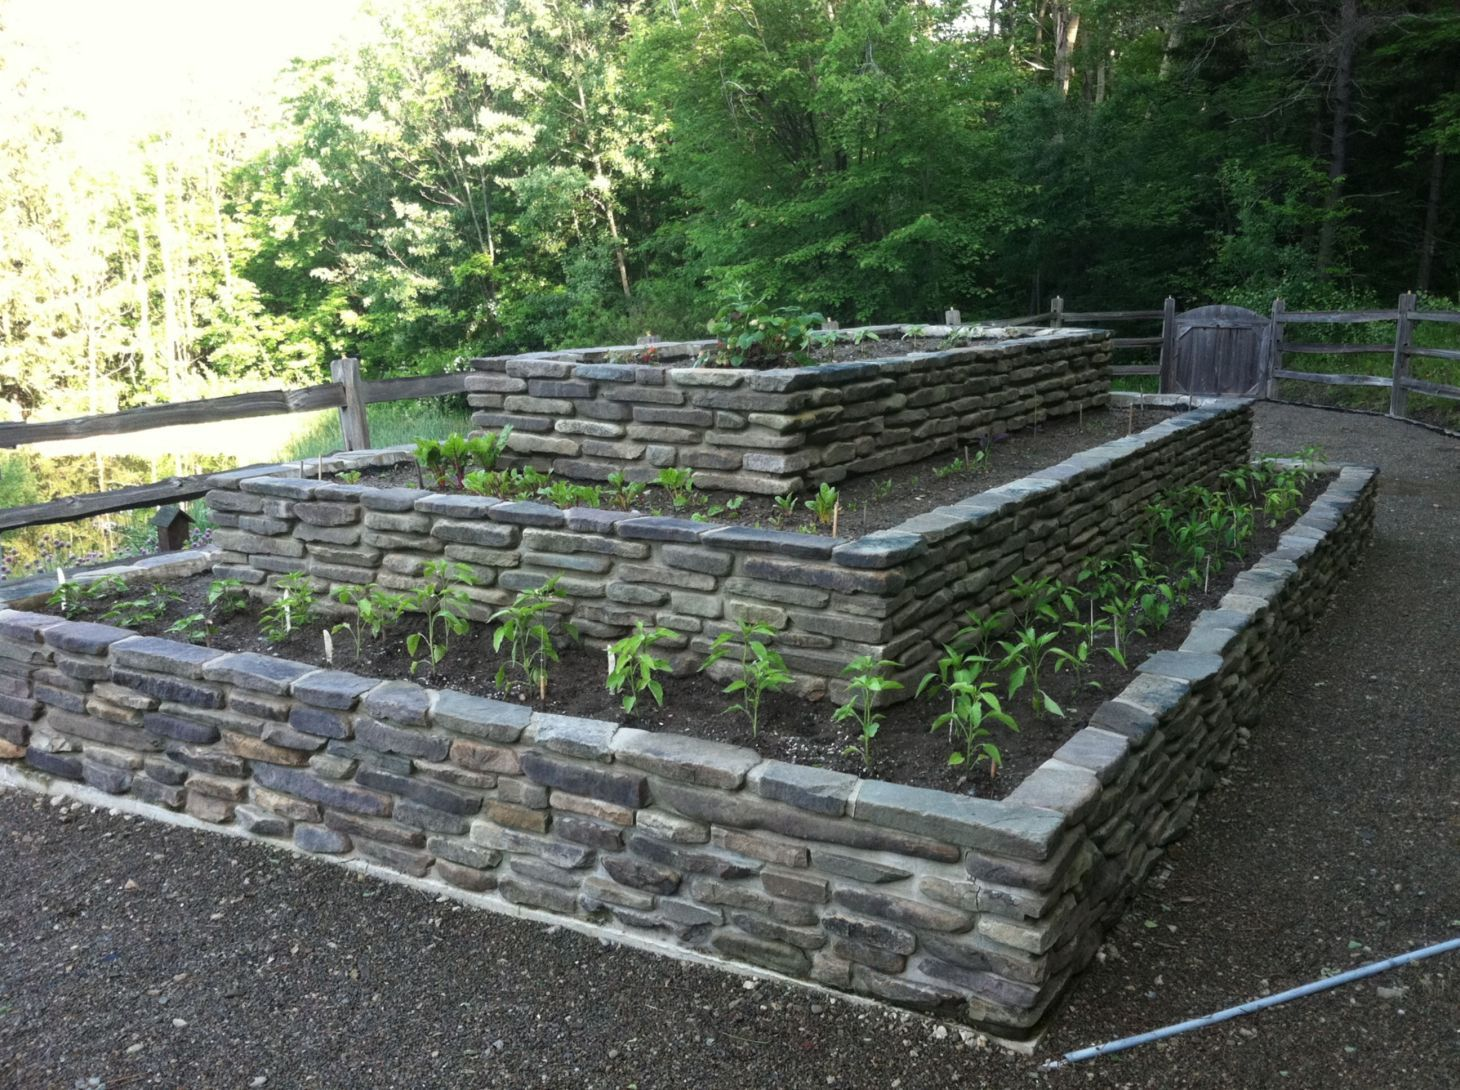 Incredible 20 Stone Raised Garden Beds Ideas For Awesome Yard In 2020 Raised Garden Garden Beds Garden Planter Boxes